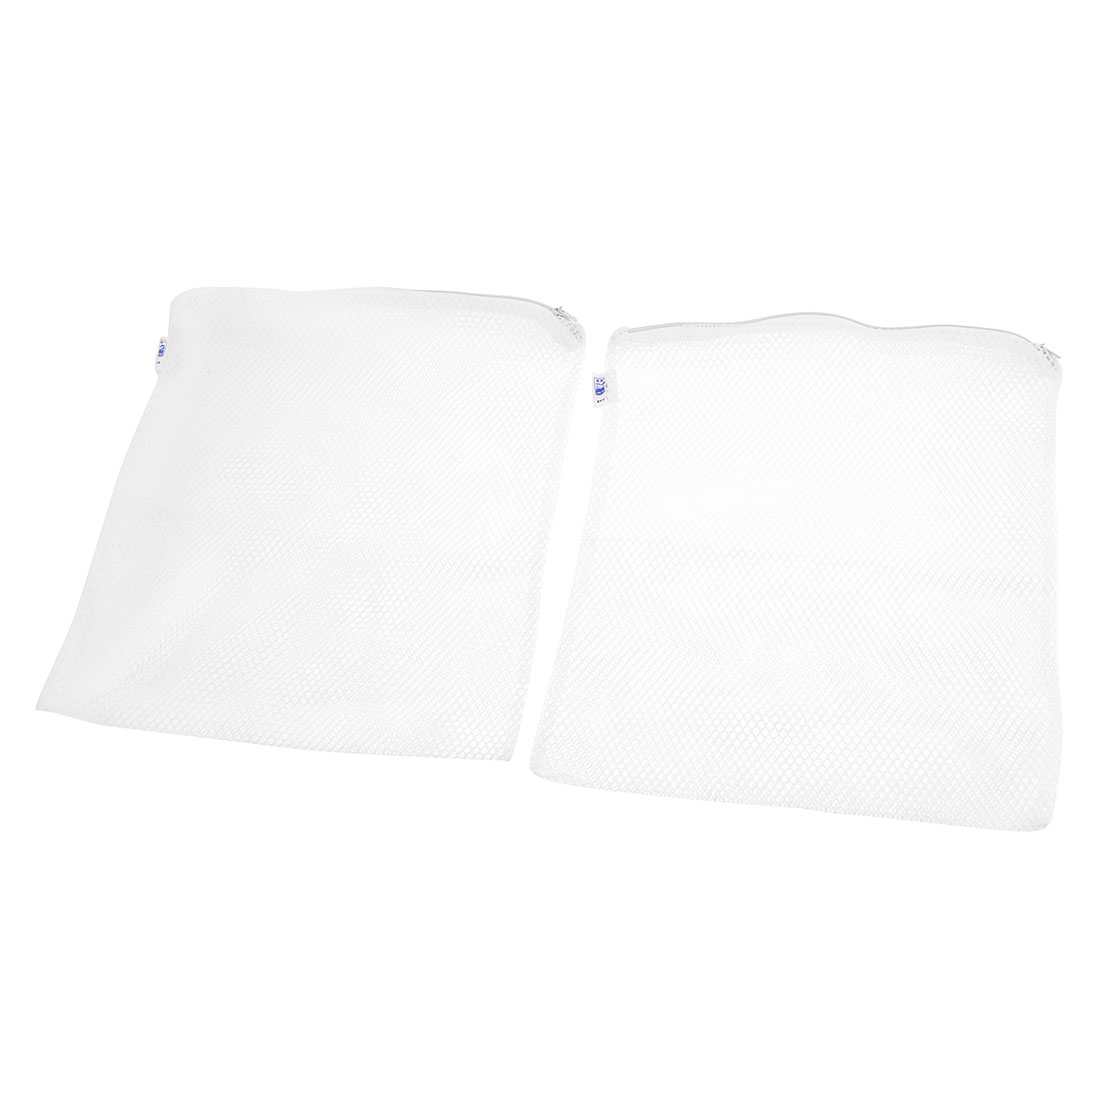 270mm x 300mm Fish Tank Breeder White Fry Isolation Net Mesh Bags 2 Pcs